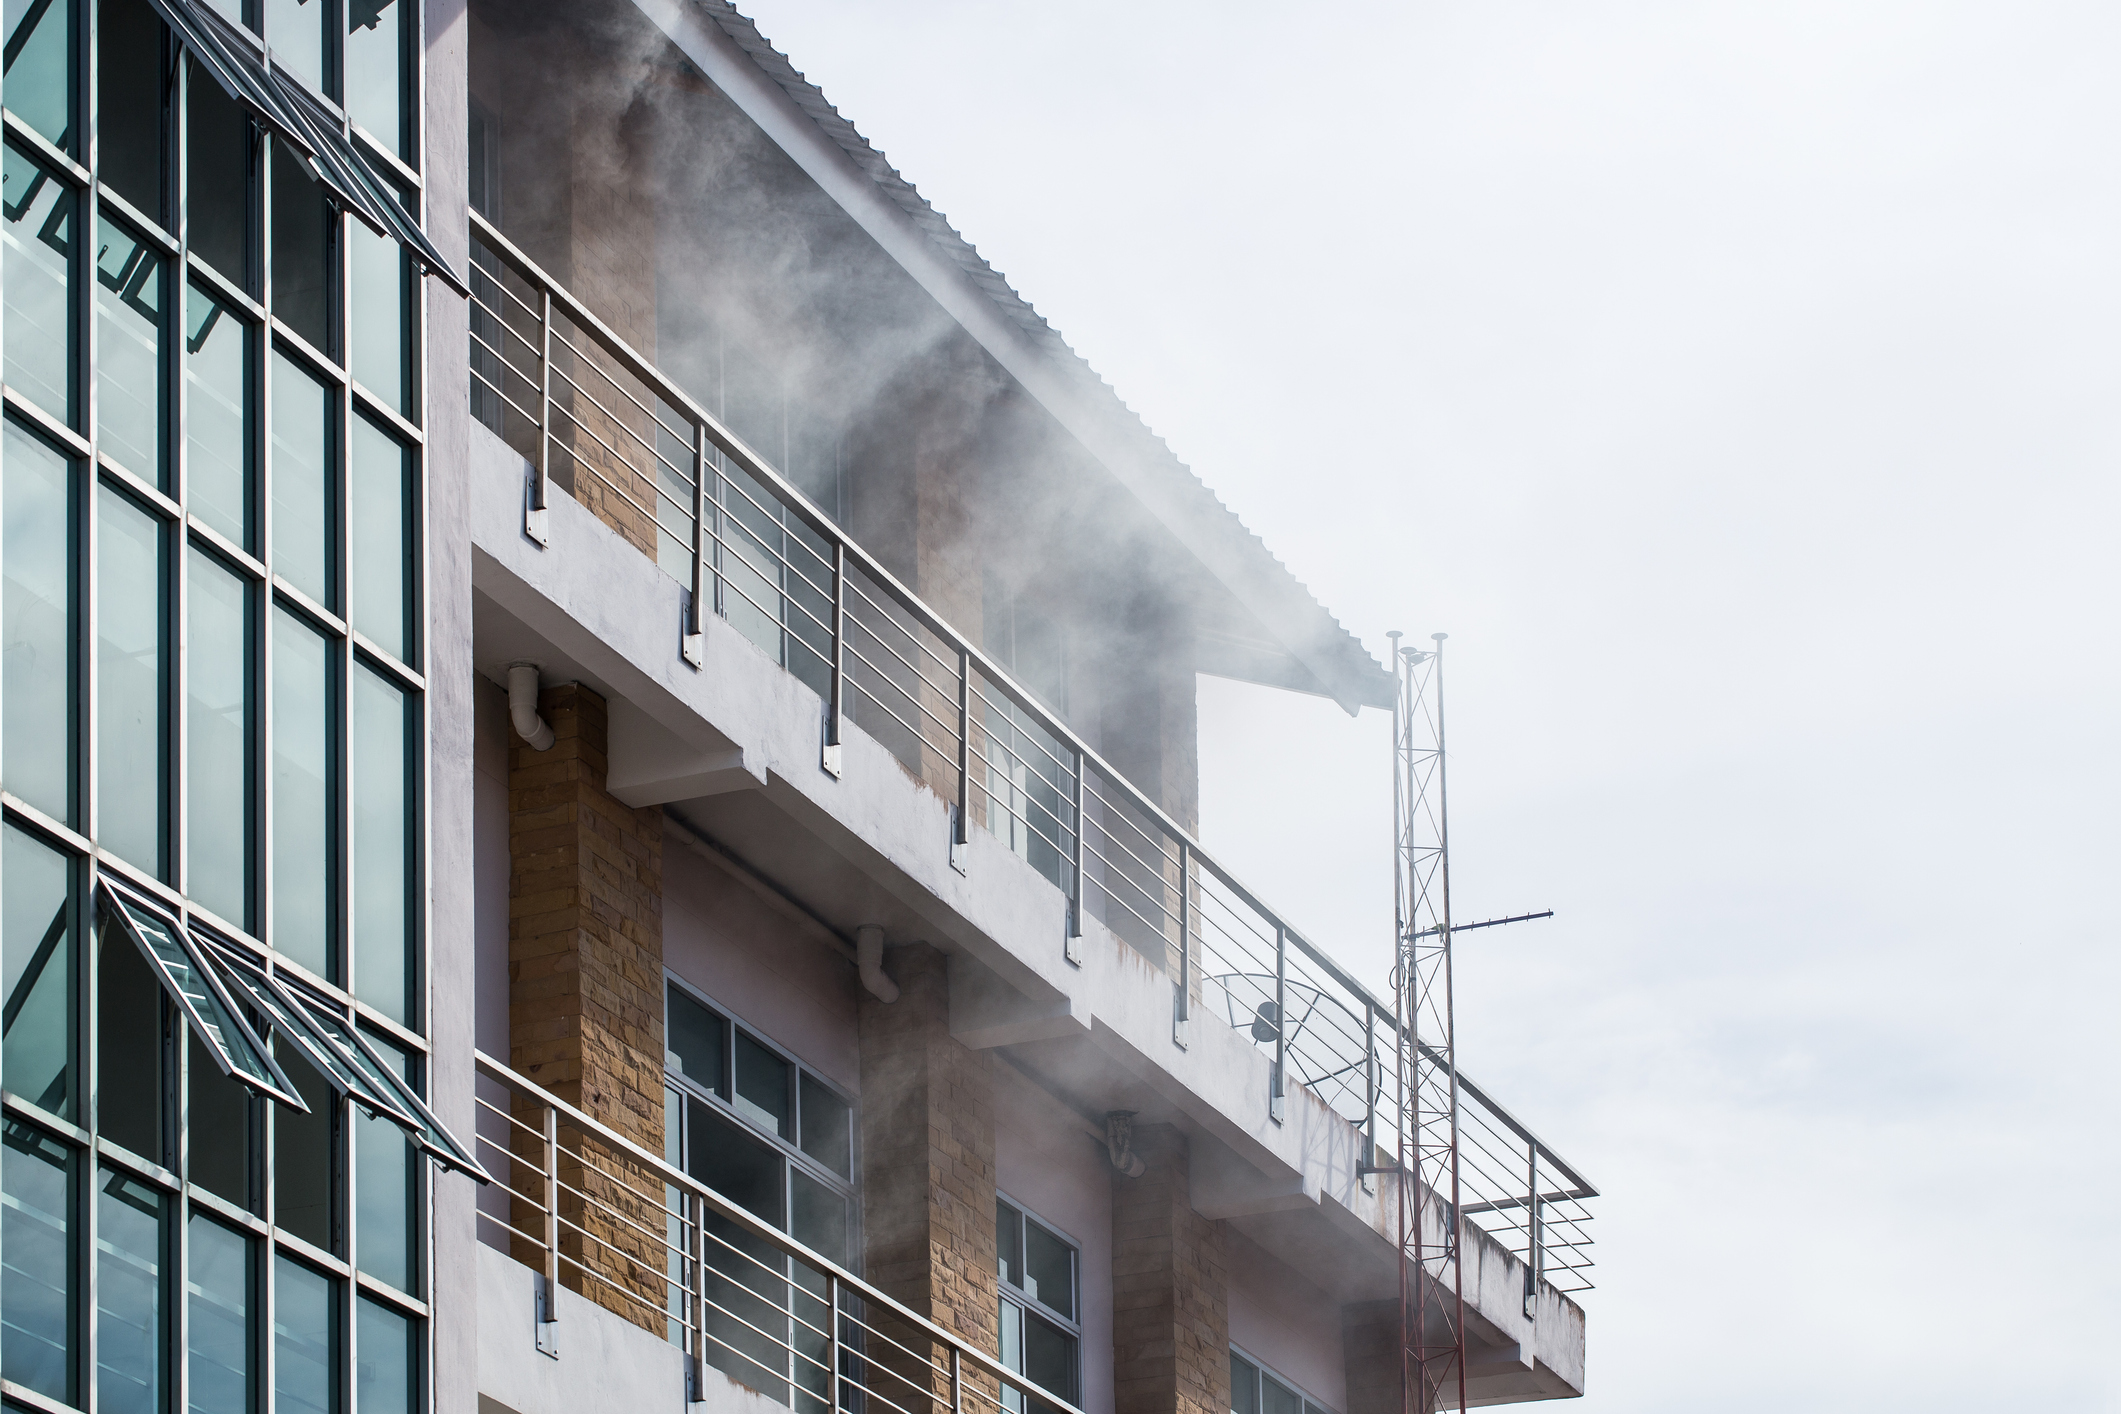 COMMON CAUSES OF FIRE DAMAGE IN YOUR BUSINESS